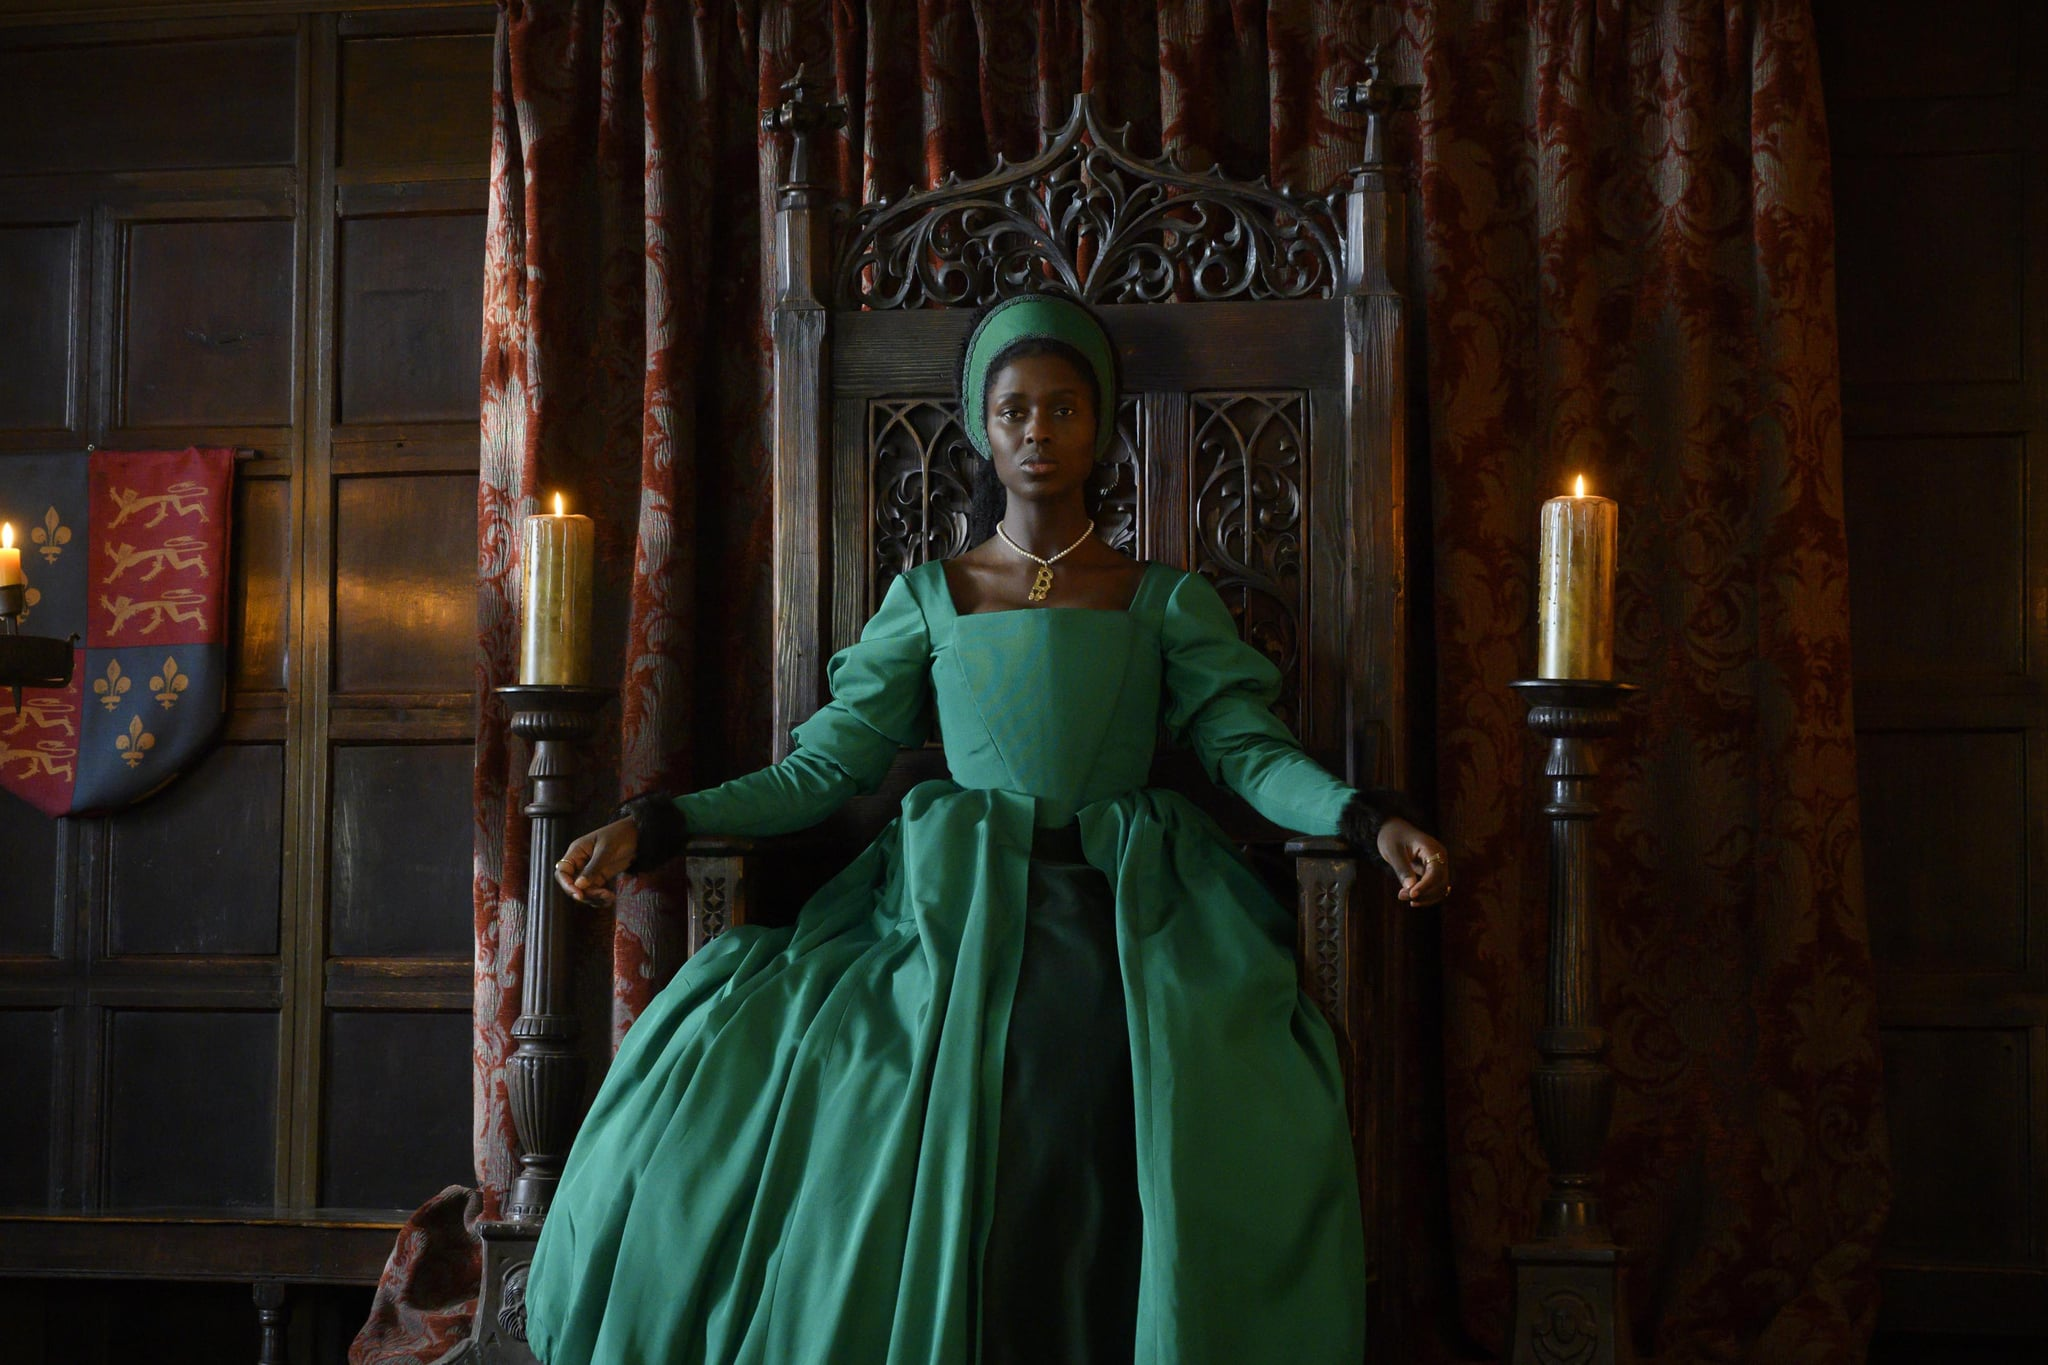 Anne Boleyn: Episode 2CAST:Jodie Turner-Smith as Anne Boleyn